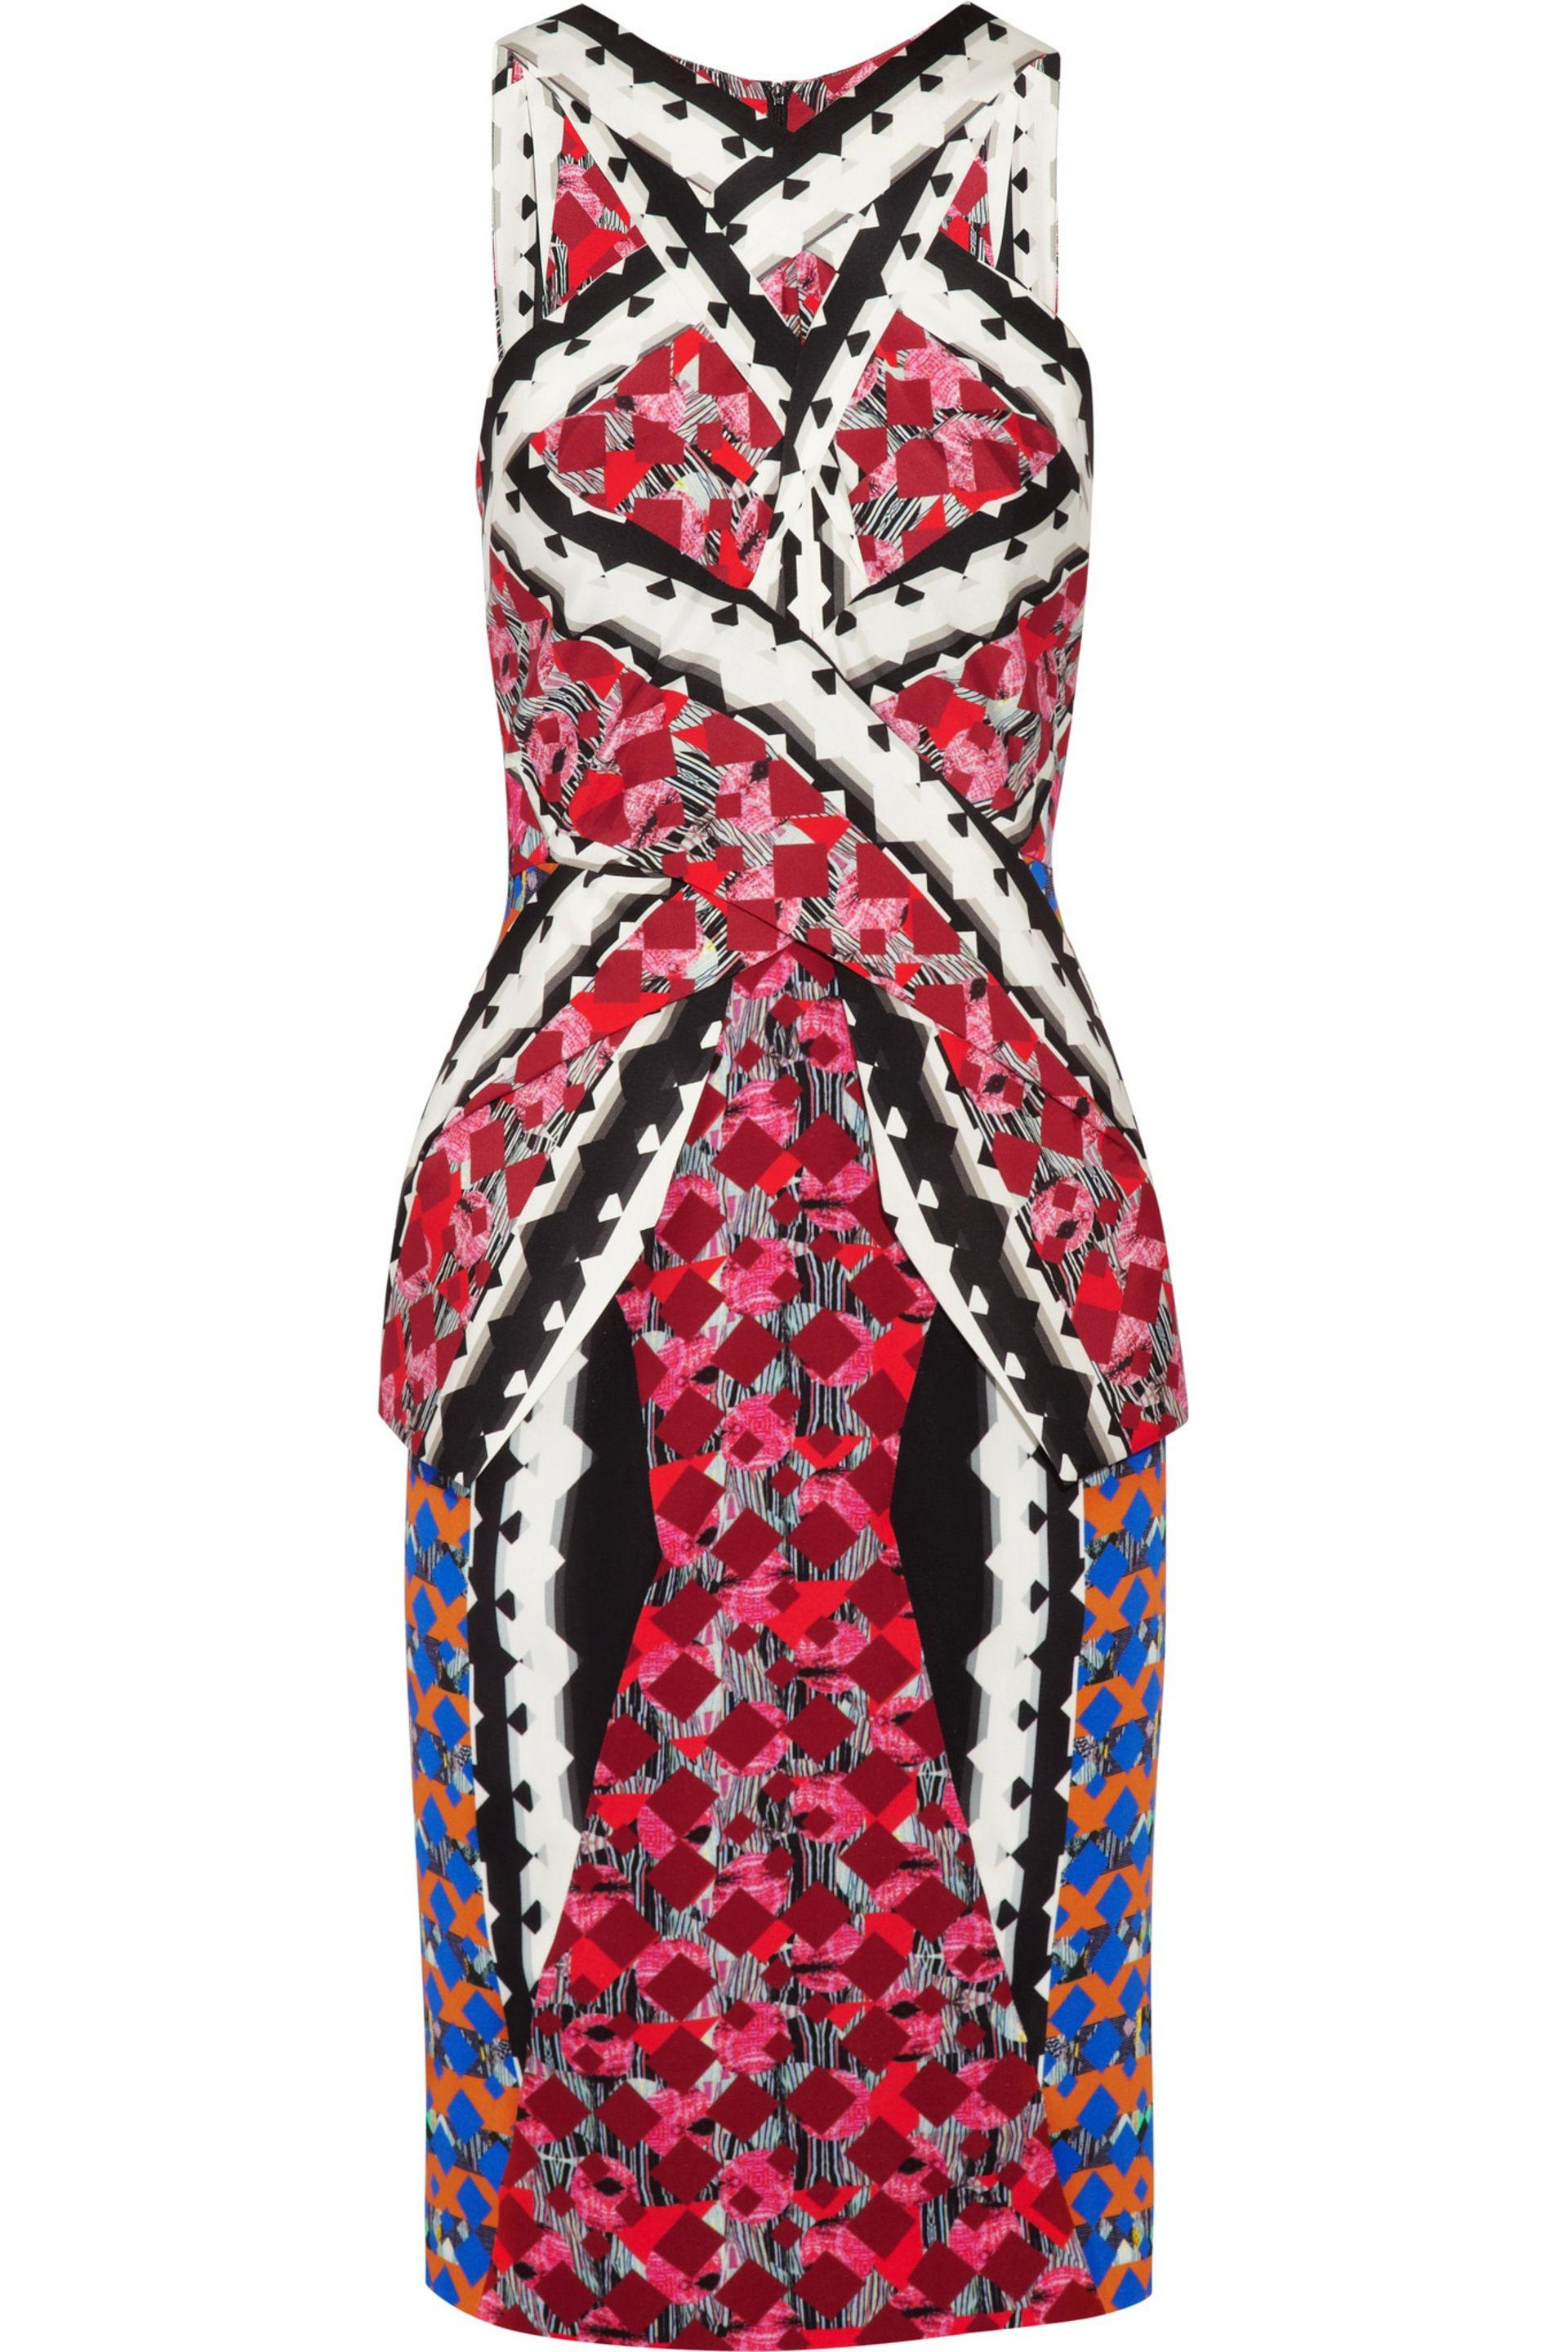 In China For Sale Discount Low Shipping Peter Pilotto Woman Ruffled Printed Cloqué Dress Red Size 10 Peter Pilotto 080UFAq0as